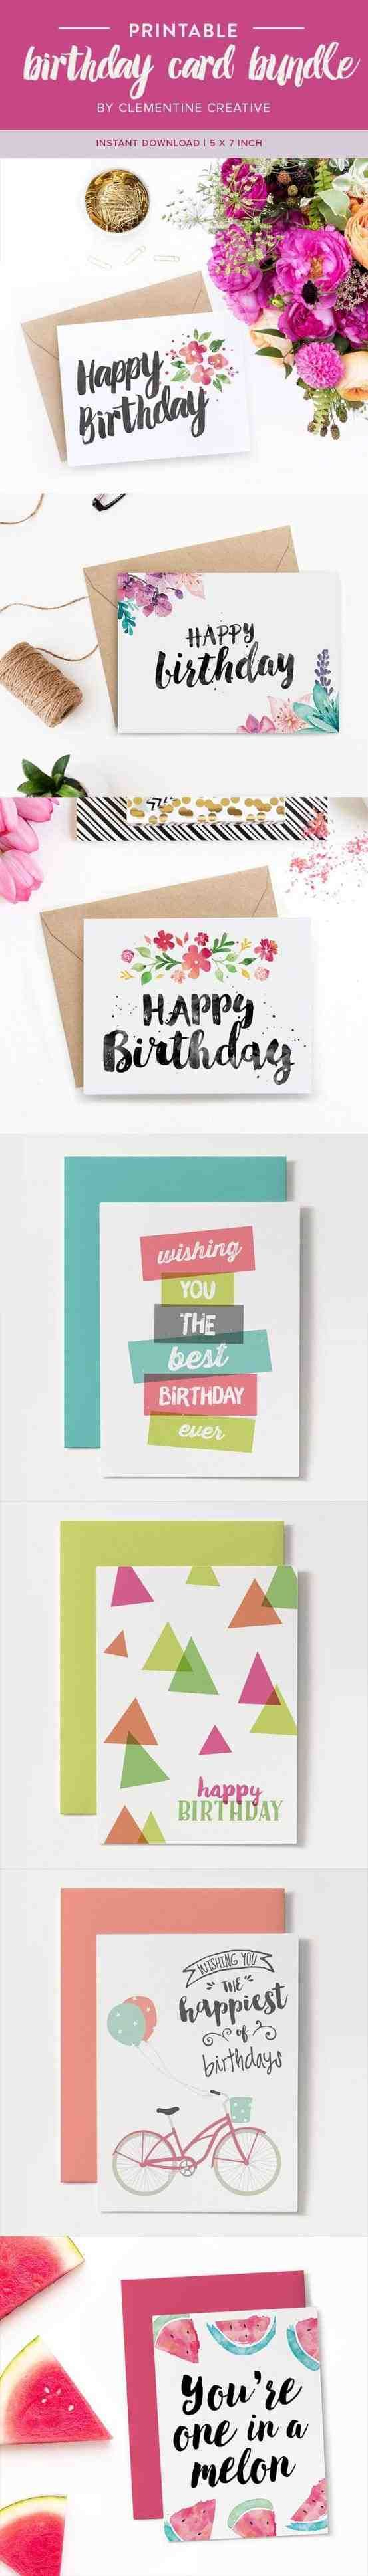 Happy Birthday Card Templates Free Beauteous Full Size Of Templatefree Birthday Cards For Brother Printable With .